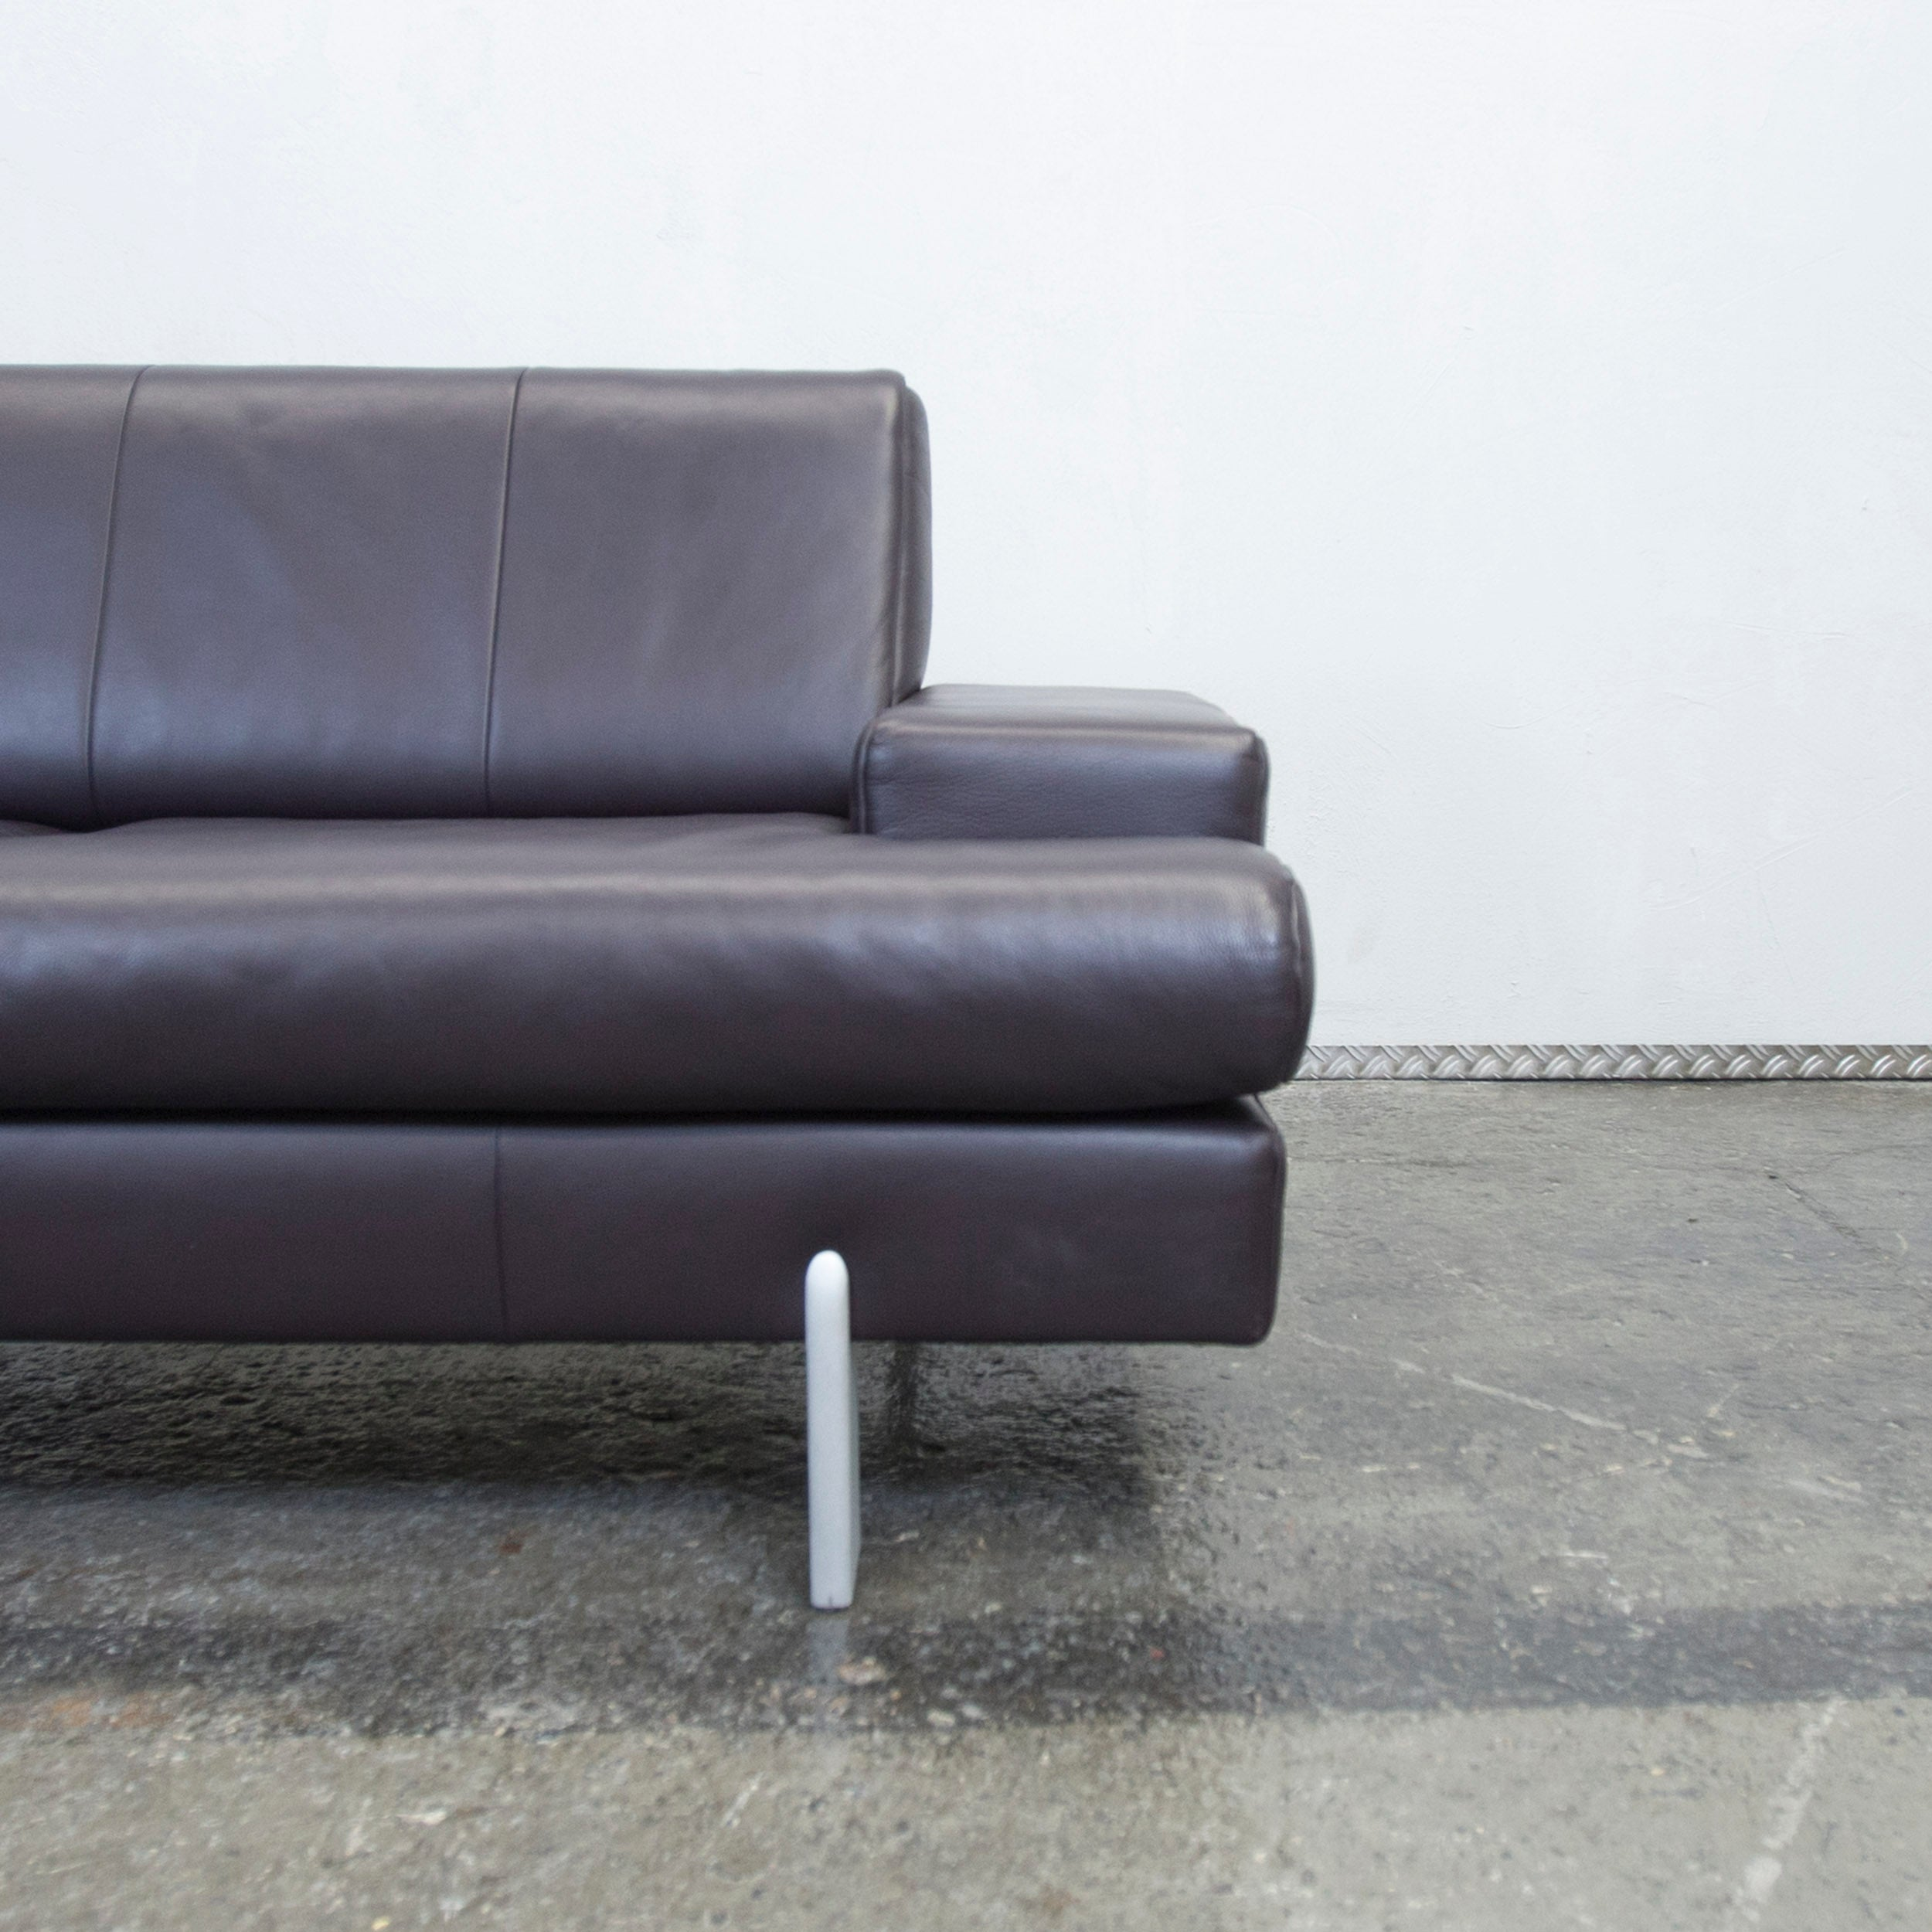 Moderne Küchenregale Lila Couch